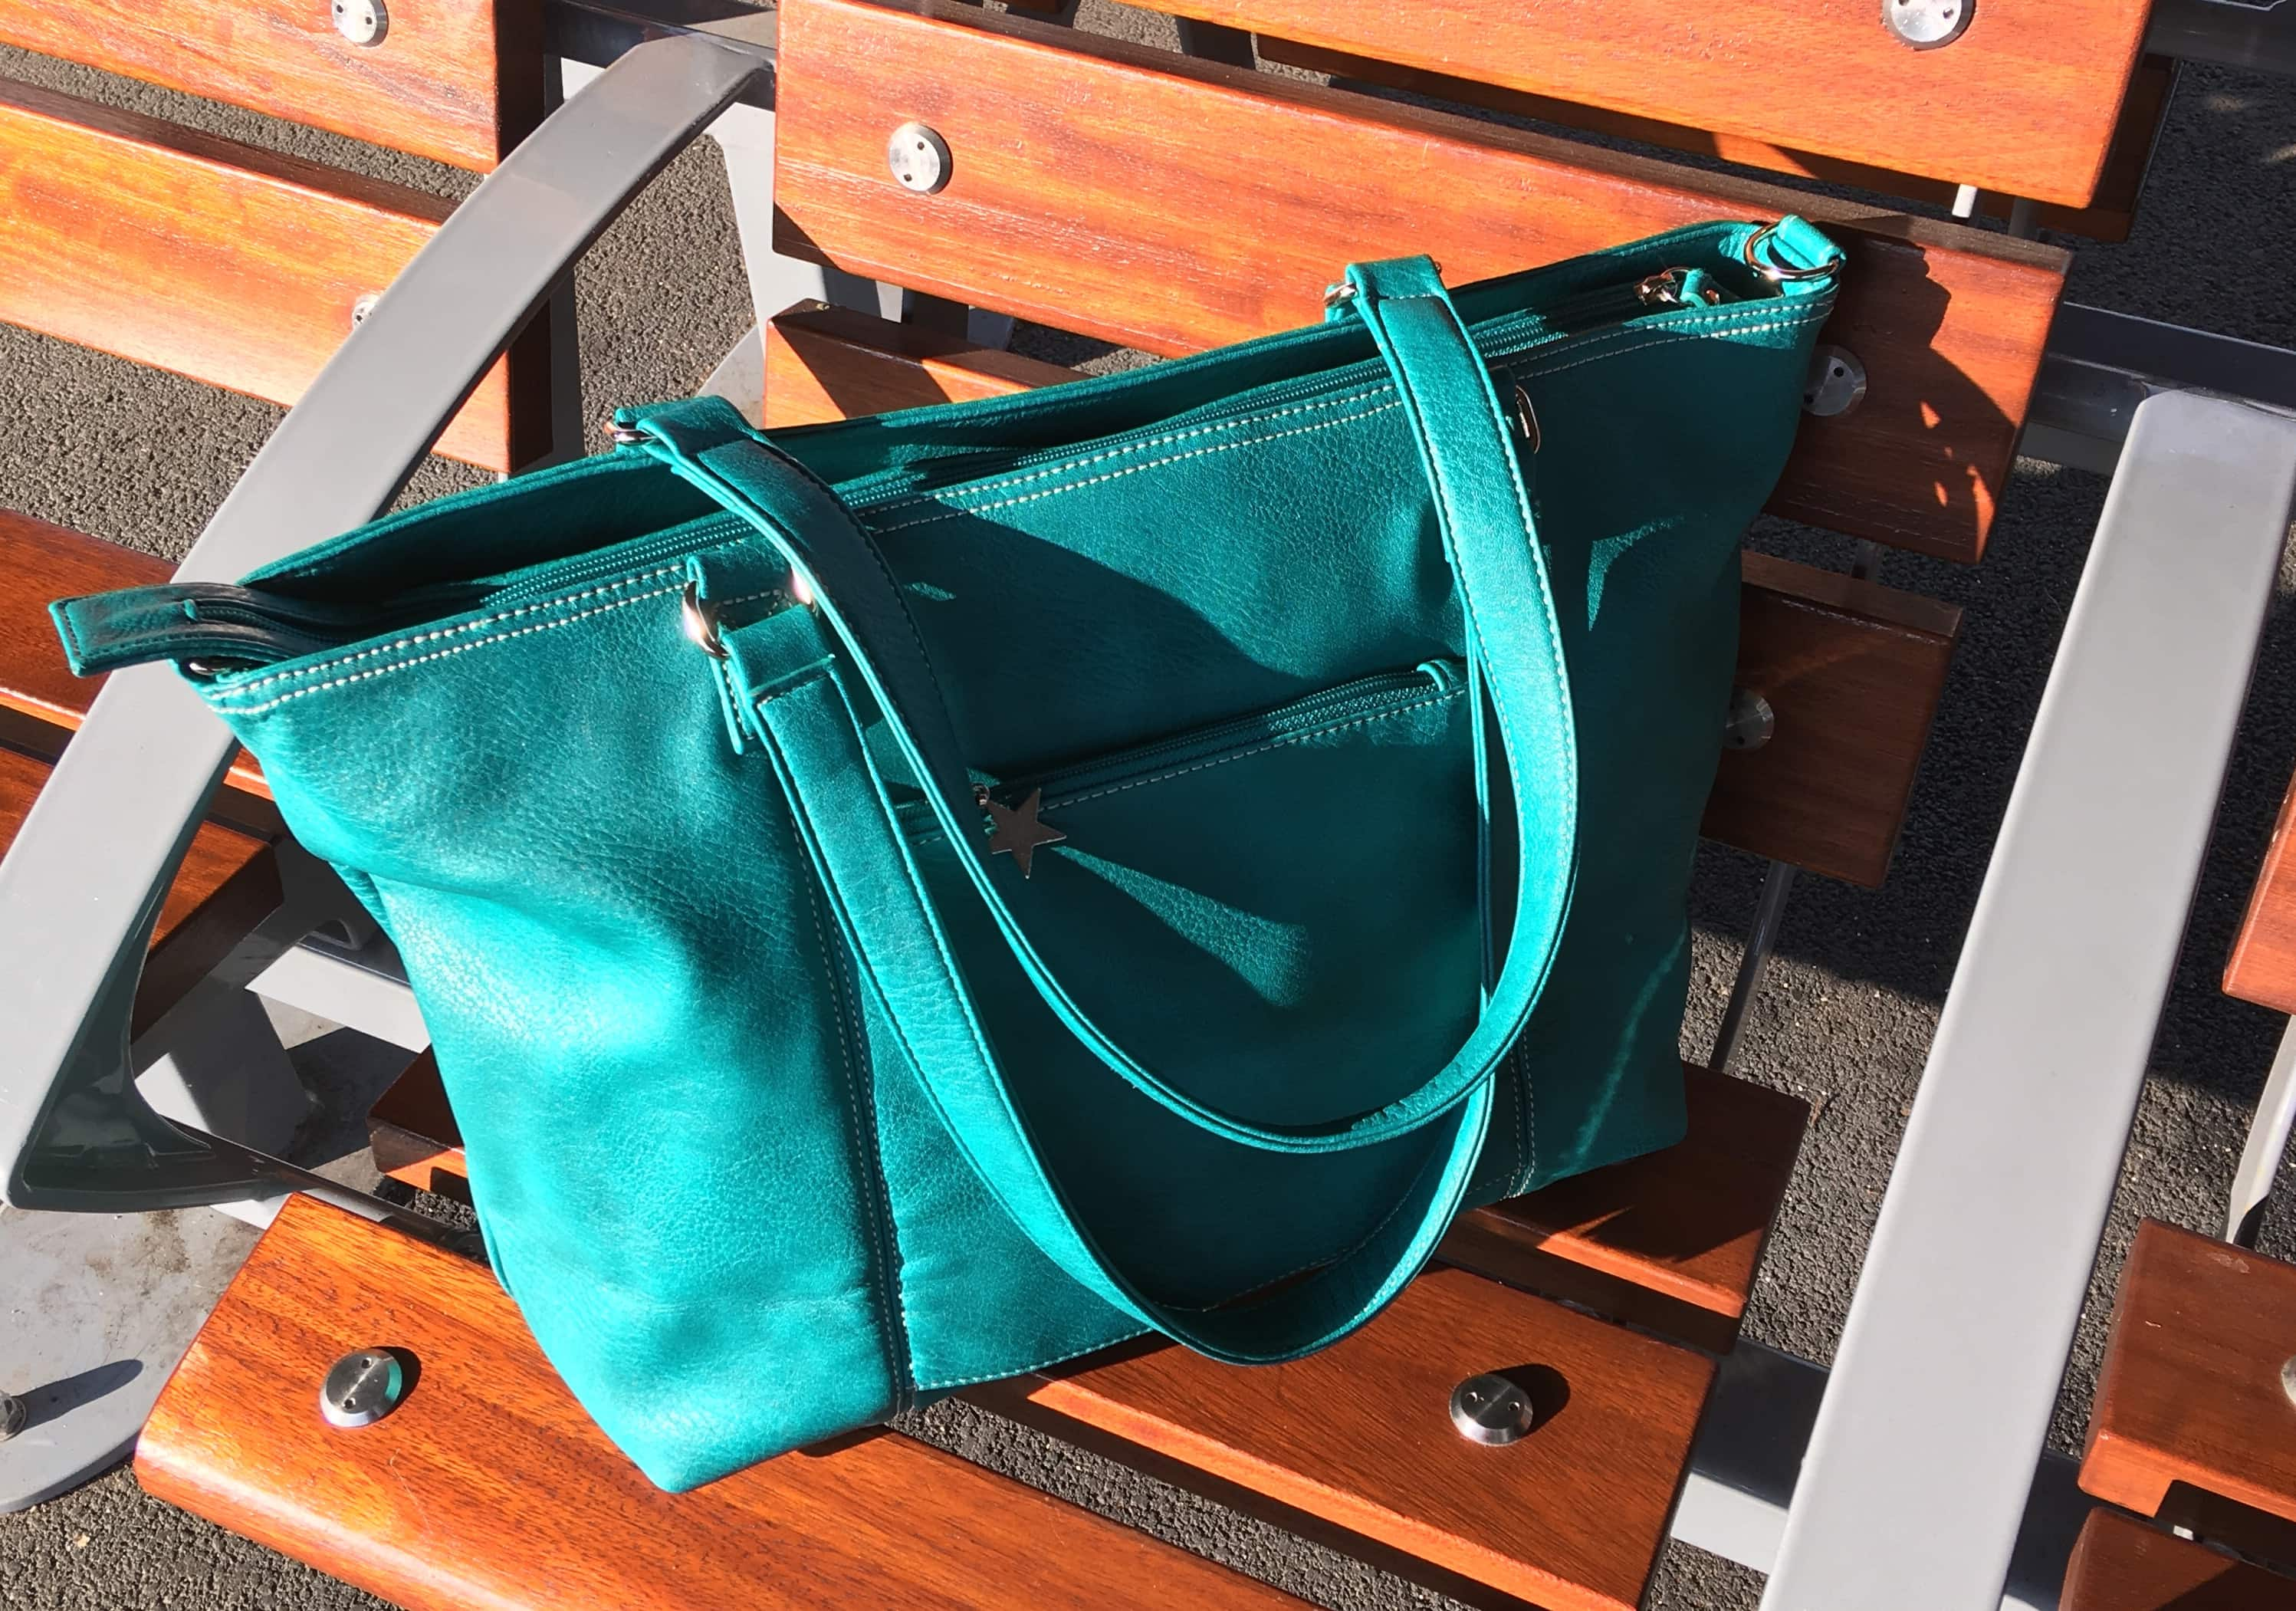 264f0c8777ff Mia Tui 15% Discount code + Bag Review - Cruising isnt just for old people